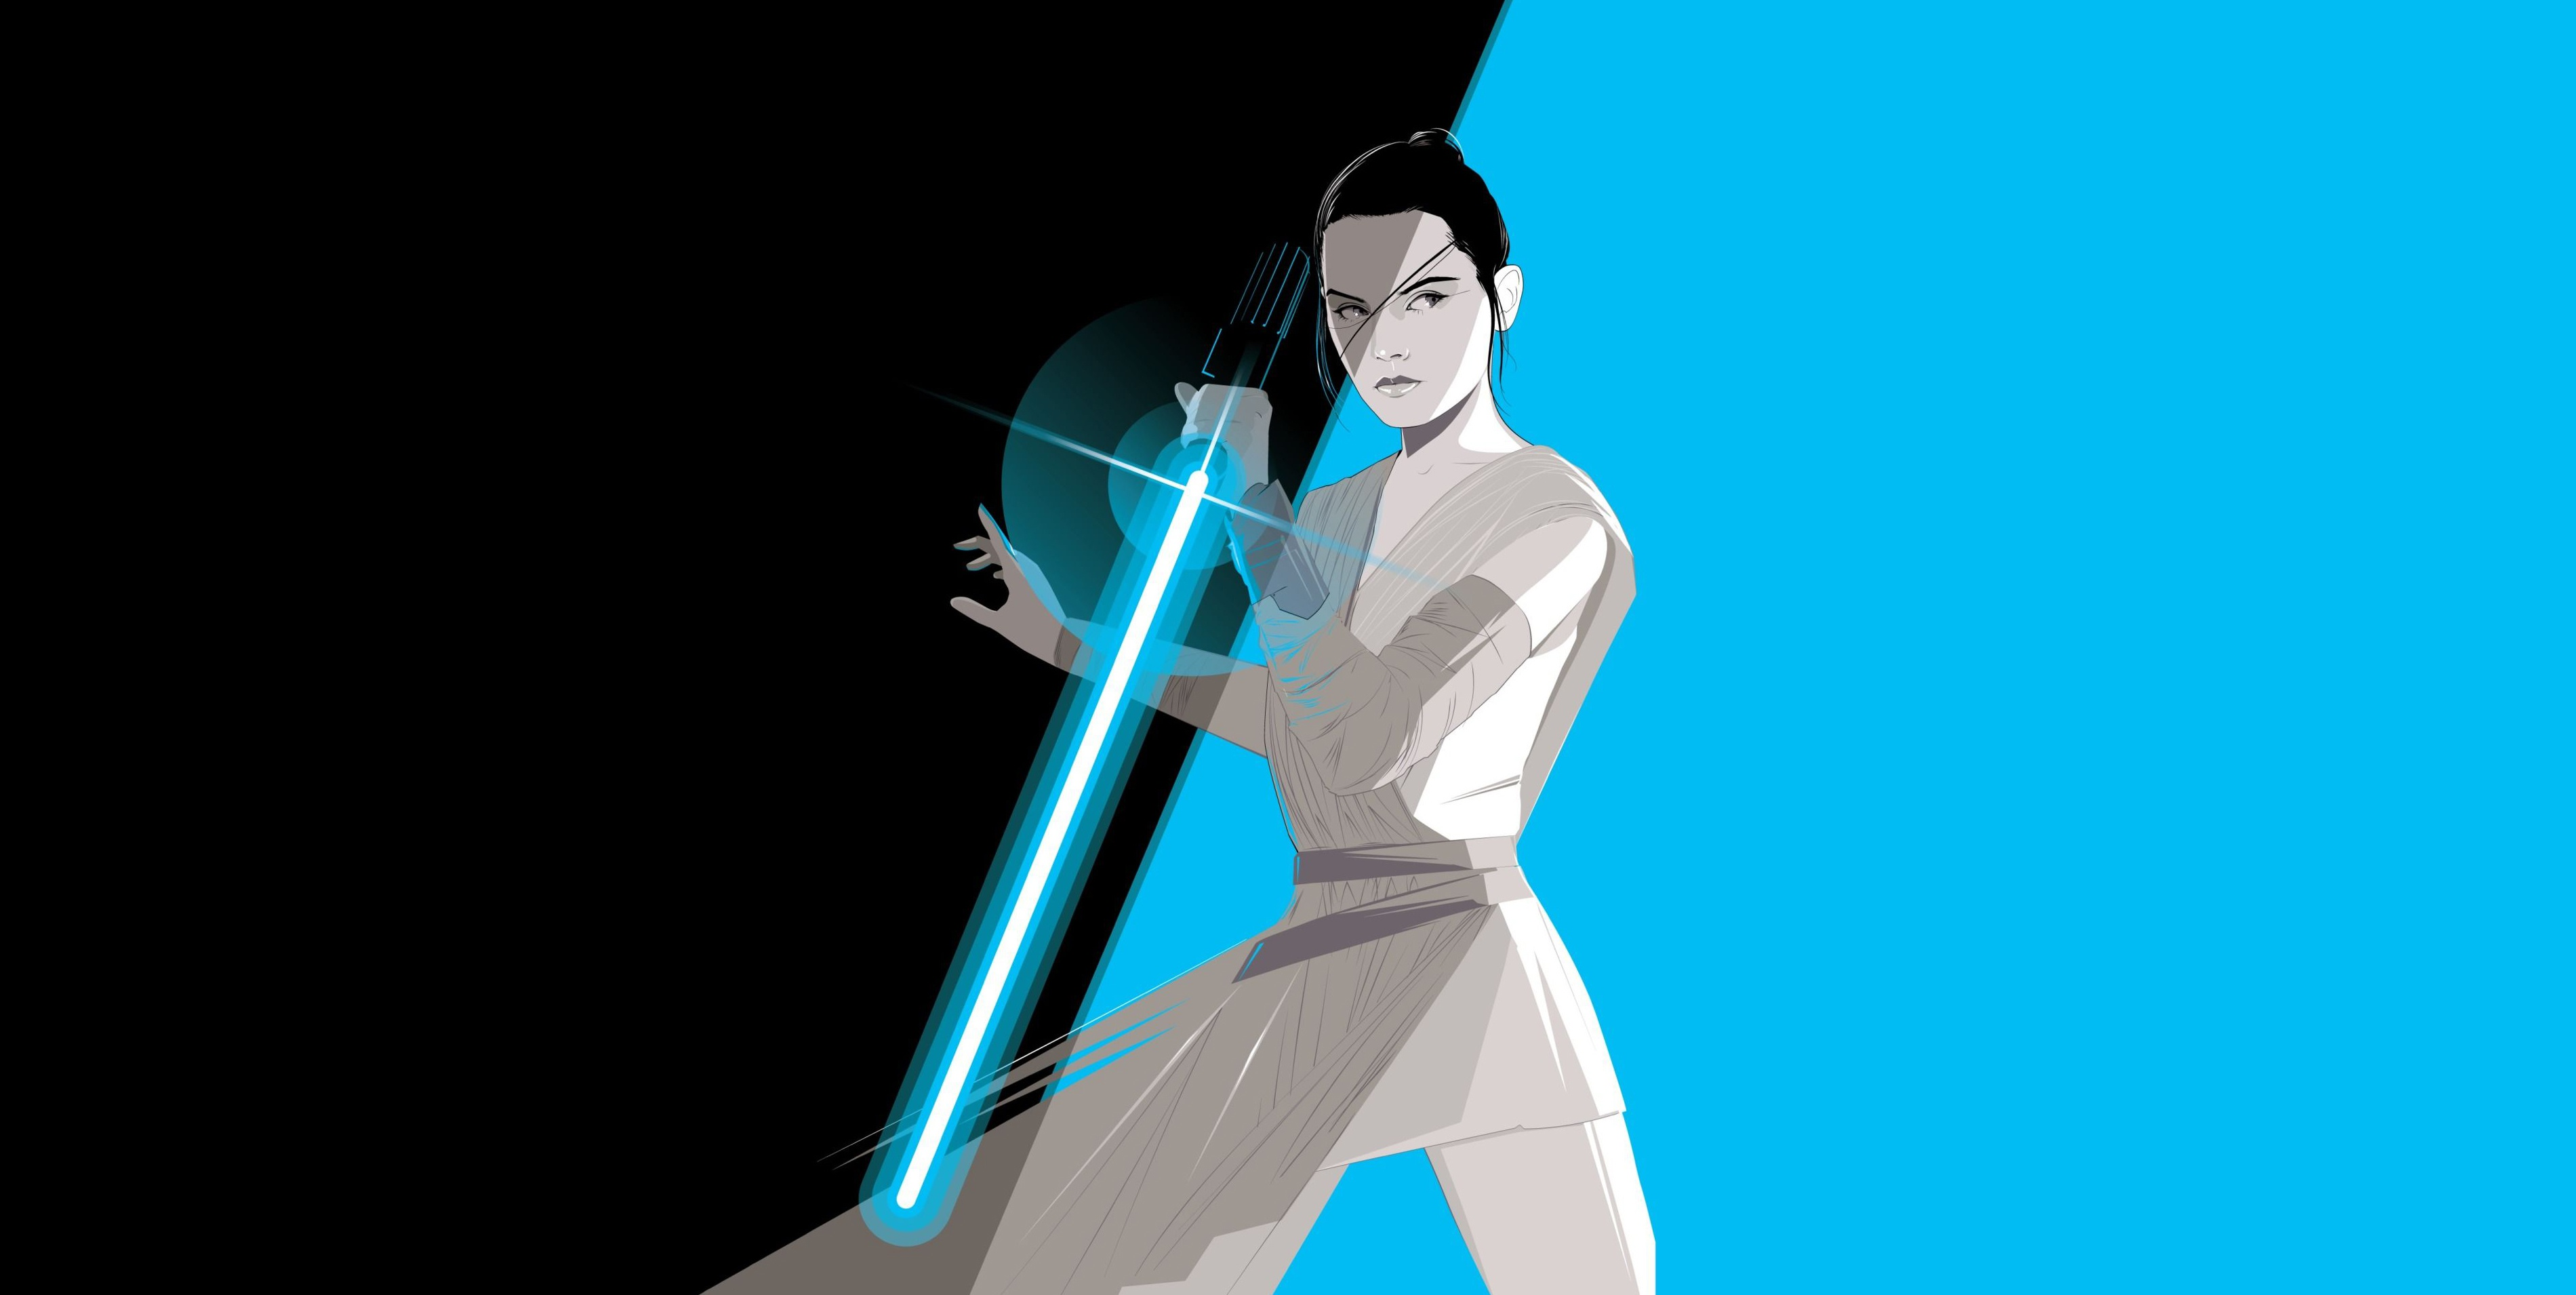 Rey Star Wars Wallpaper Minimalist 3800x1910 Download Hd Wallpaper Wallpapertip